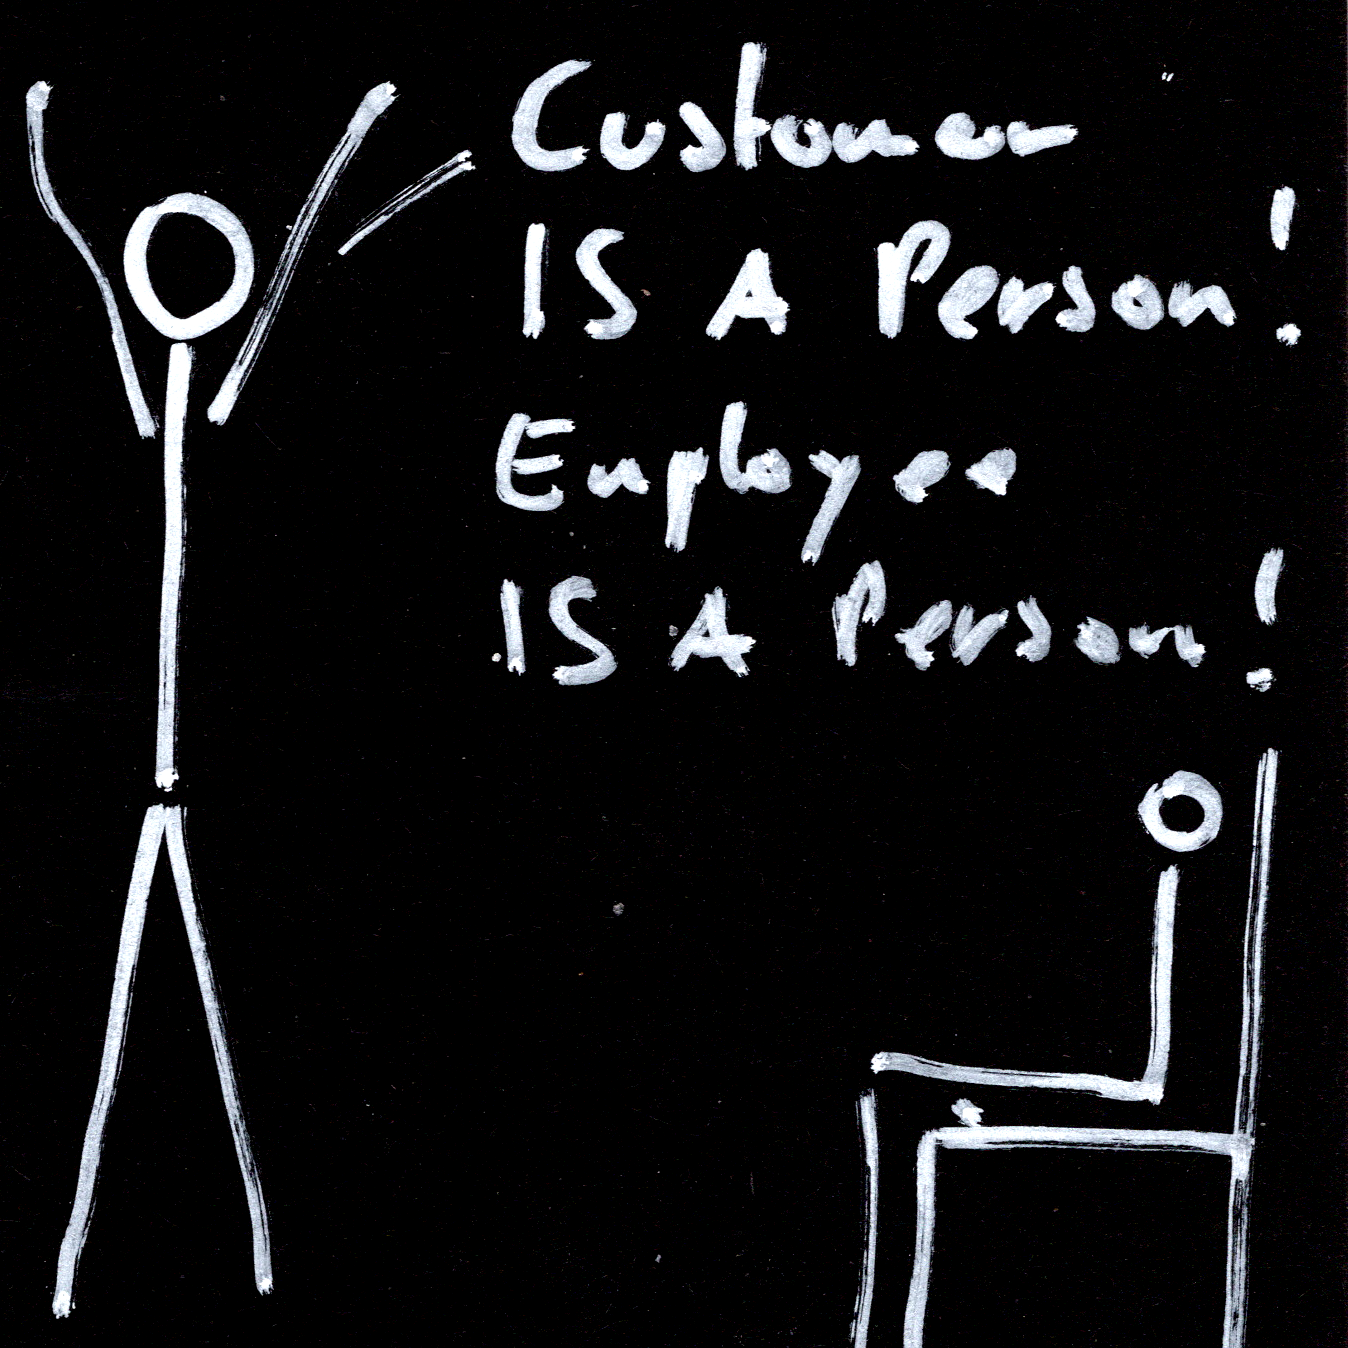 Customer IS-A Person! Employee IS-A Person!